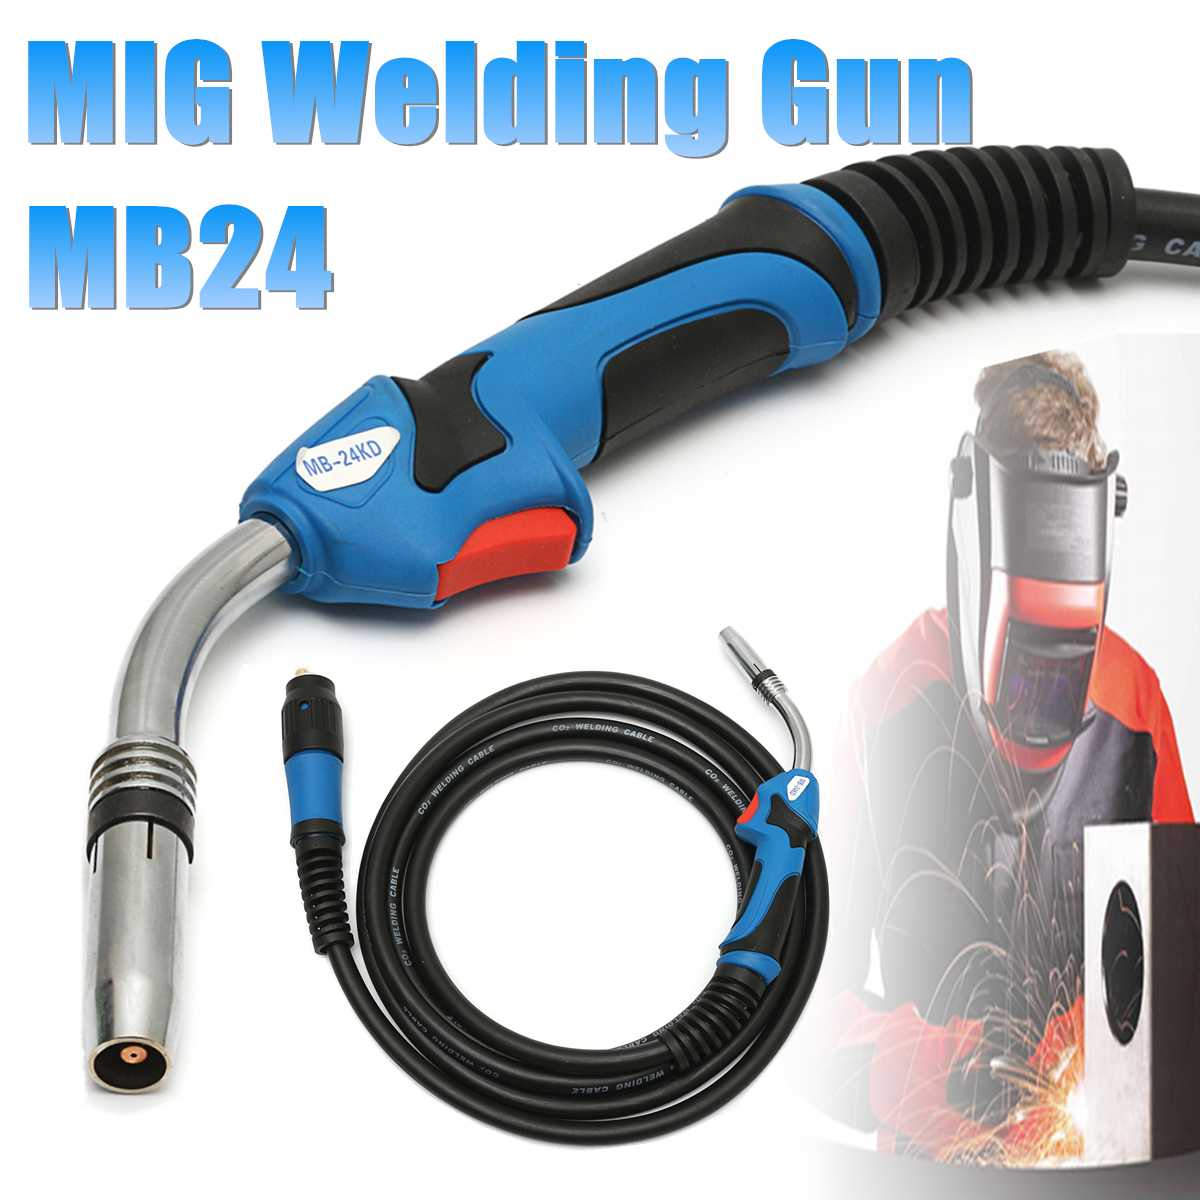 MB24 MIG Welding Gun-Torch  with 5 Meter Length Lead Electric Welder Torch Stinger PartsMB24 MIG Welding Gun-Torch  with 5 Meter Length Lead Electric Welder Torch Stinger Parts